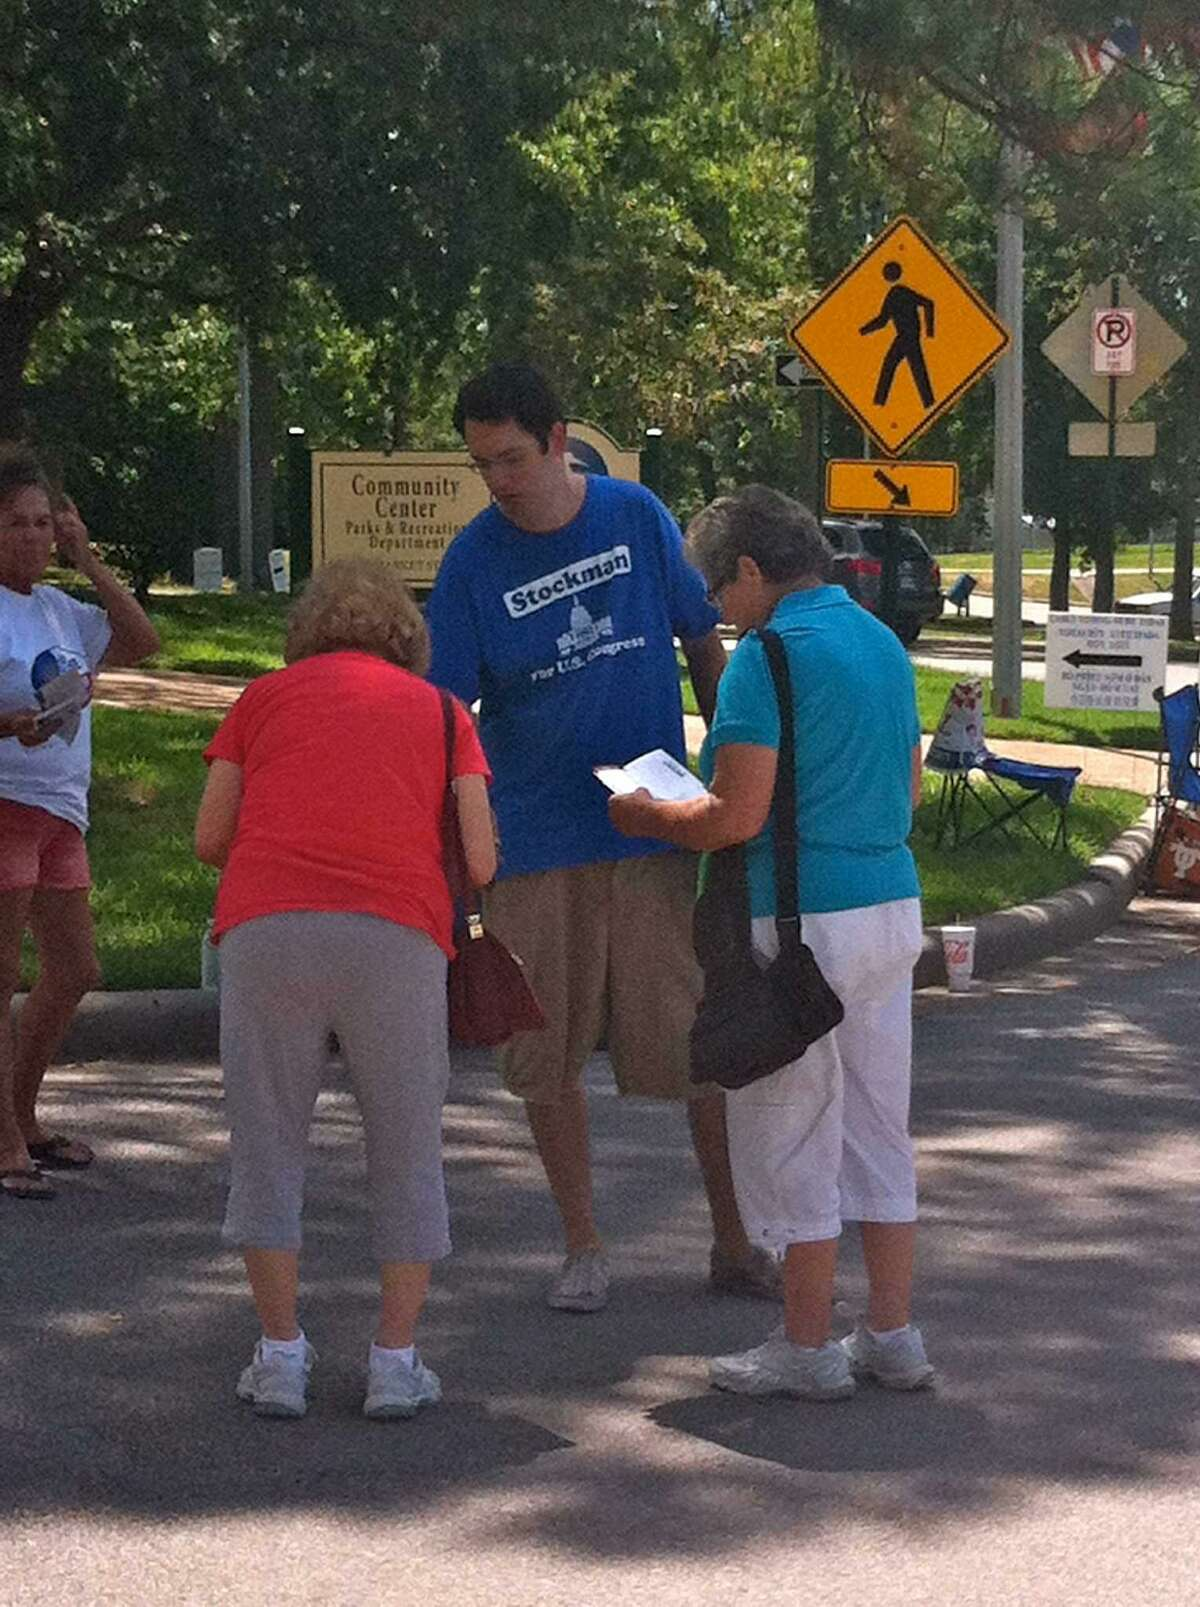 Stockman's campaign employee, Thomas Dodd, and other poll workers on election day in 2012 in Baytown. (Dodd in the center in the blue shirt). Dodd and another Stockman congressional staffer, Jason Posey, were fired in mid October. hand-in photo